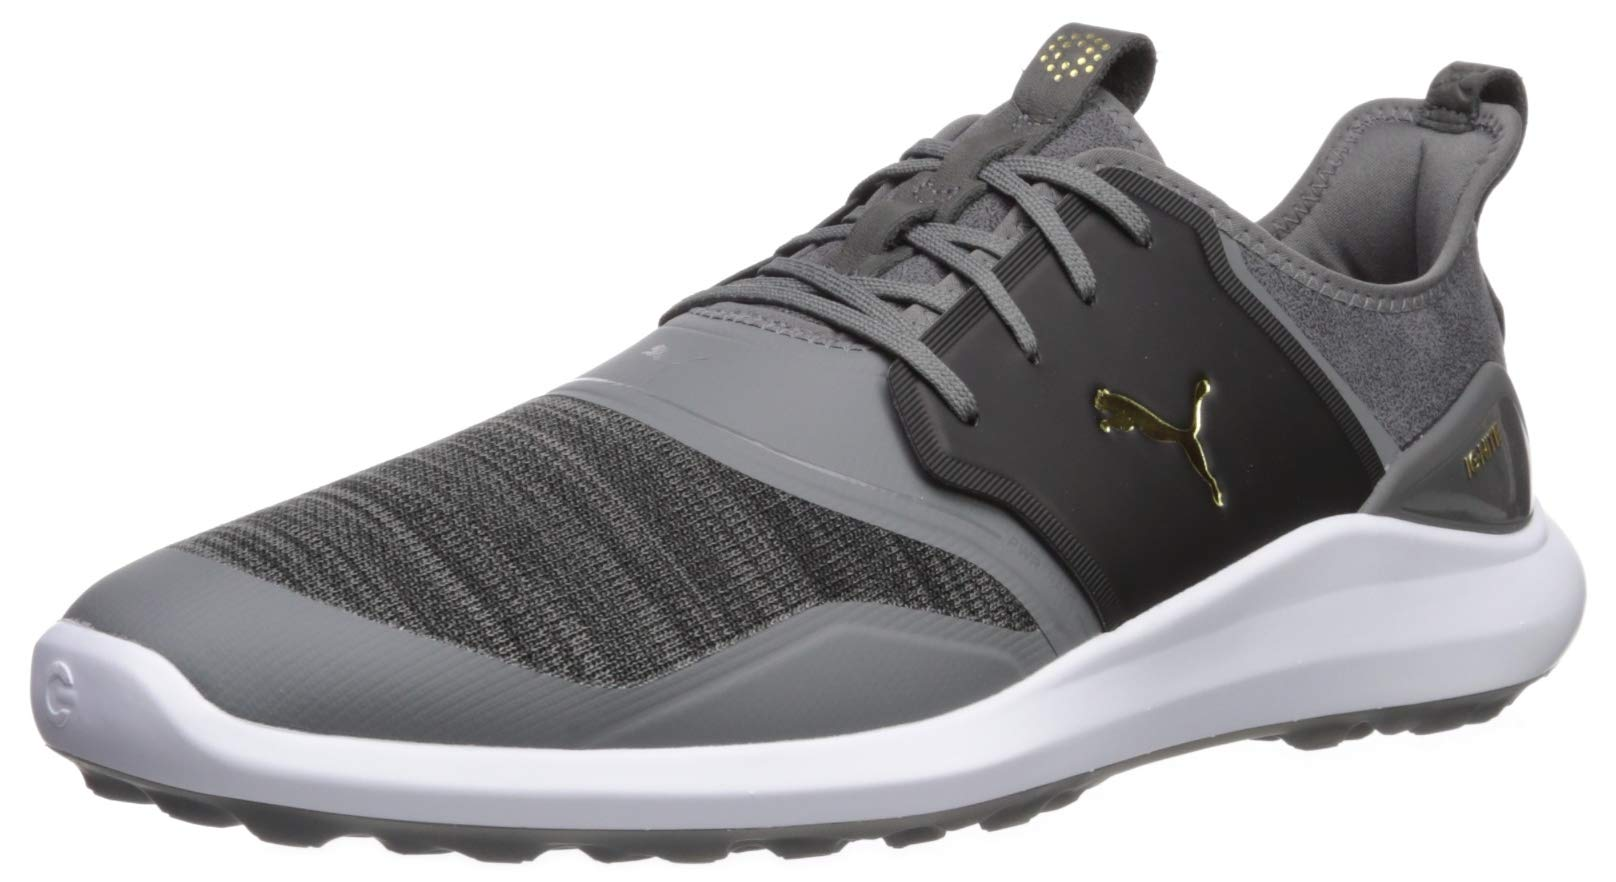 Puma Golf Men's Ignite Nxt Lace Golf Shoe, Quiet Shade Team Gold-Puma Black, 11 Wide US by PUMA